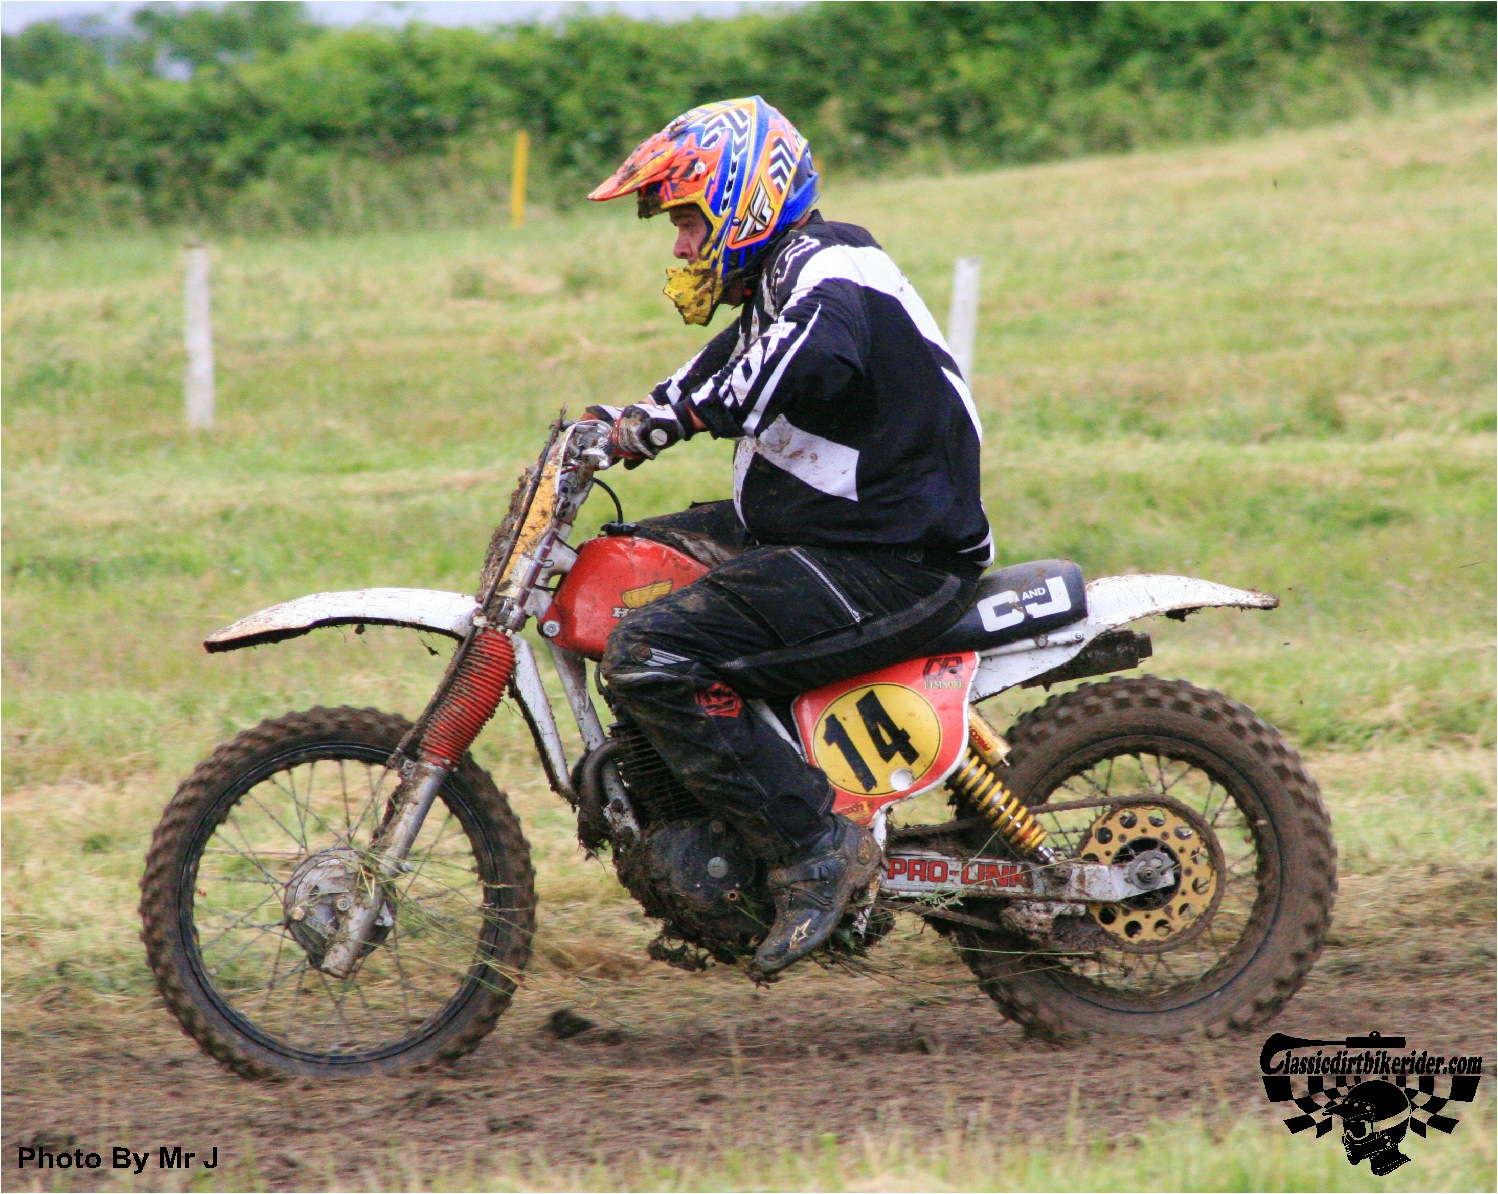 king of the castle 2015 photos Farleigh Castle twinshock motocross classicdirtbikerider.com 119